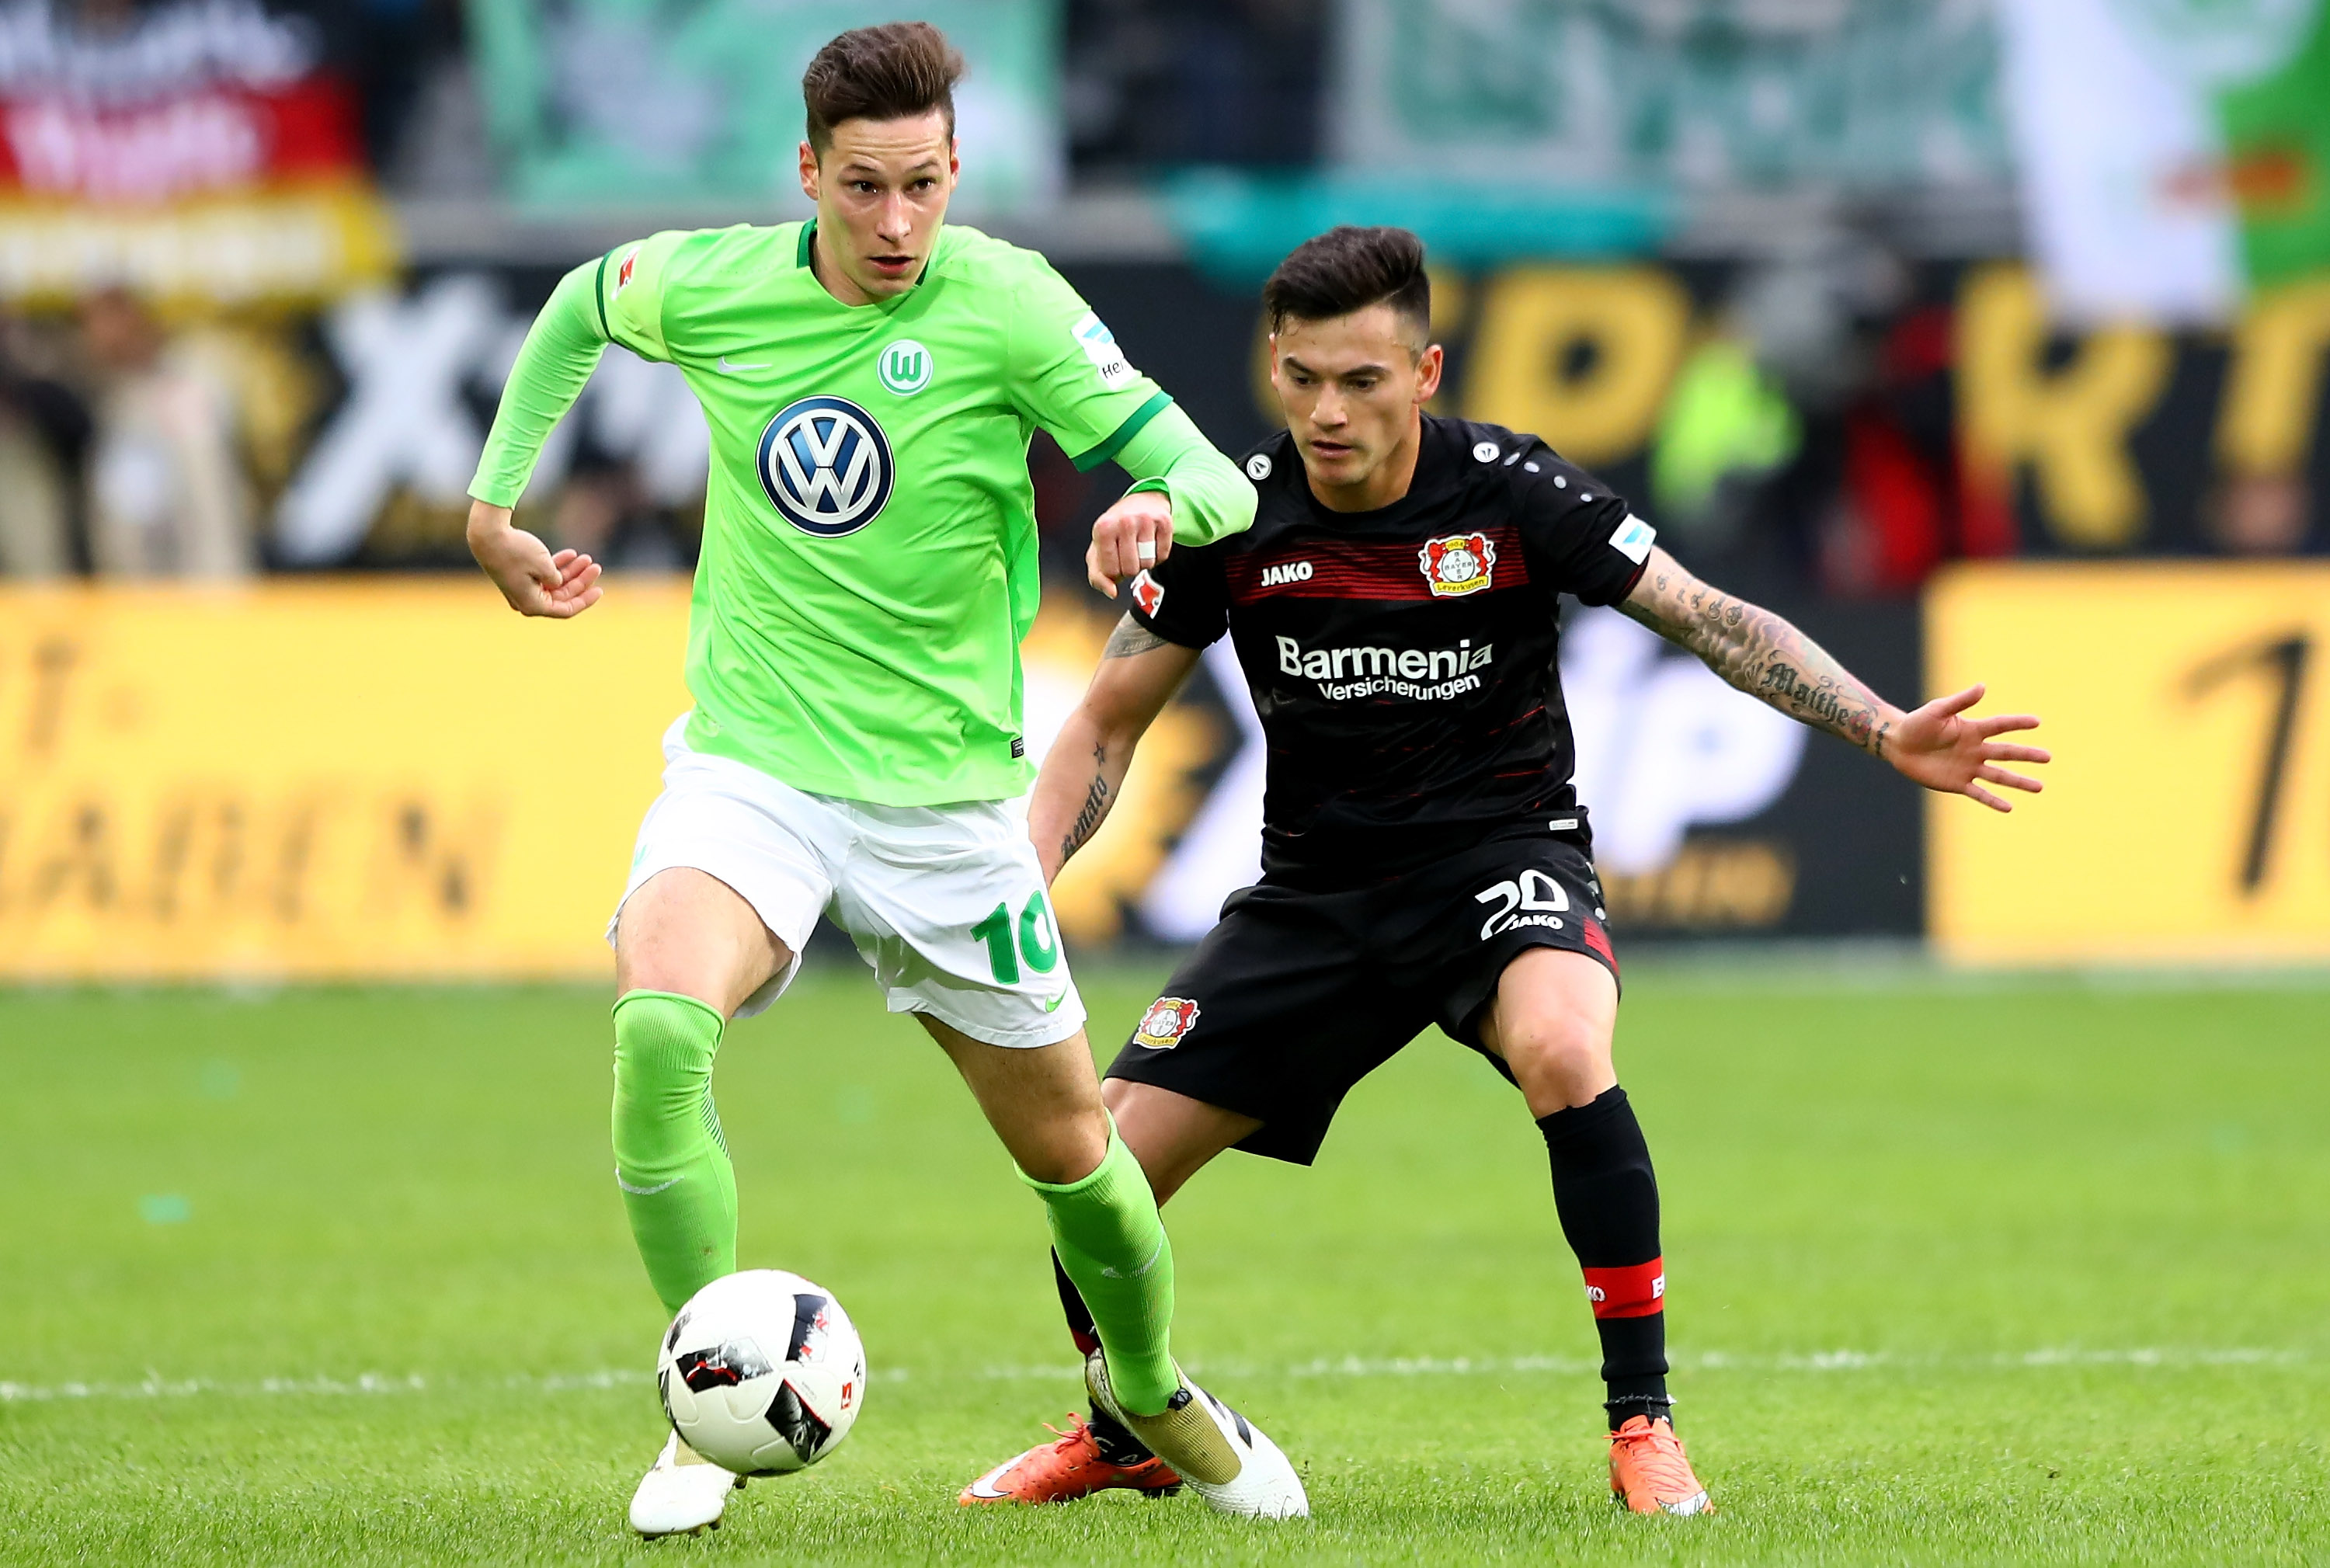 Wolfsburg indicate they'd now allow Julian Draxler to seal Arsenal transfer